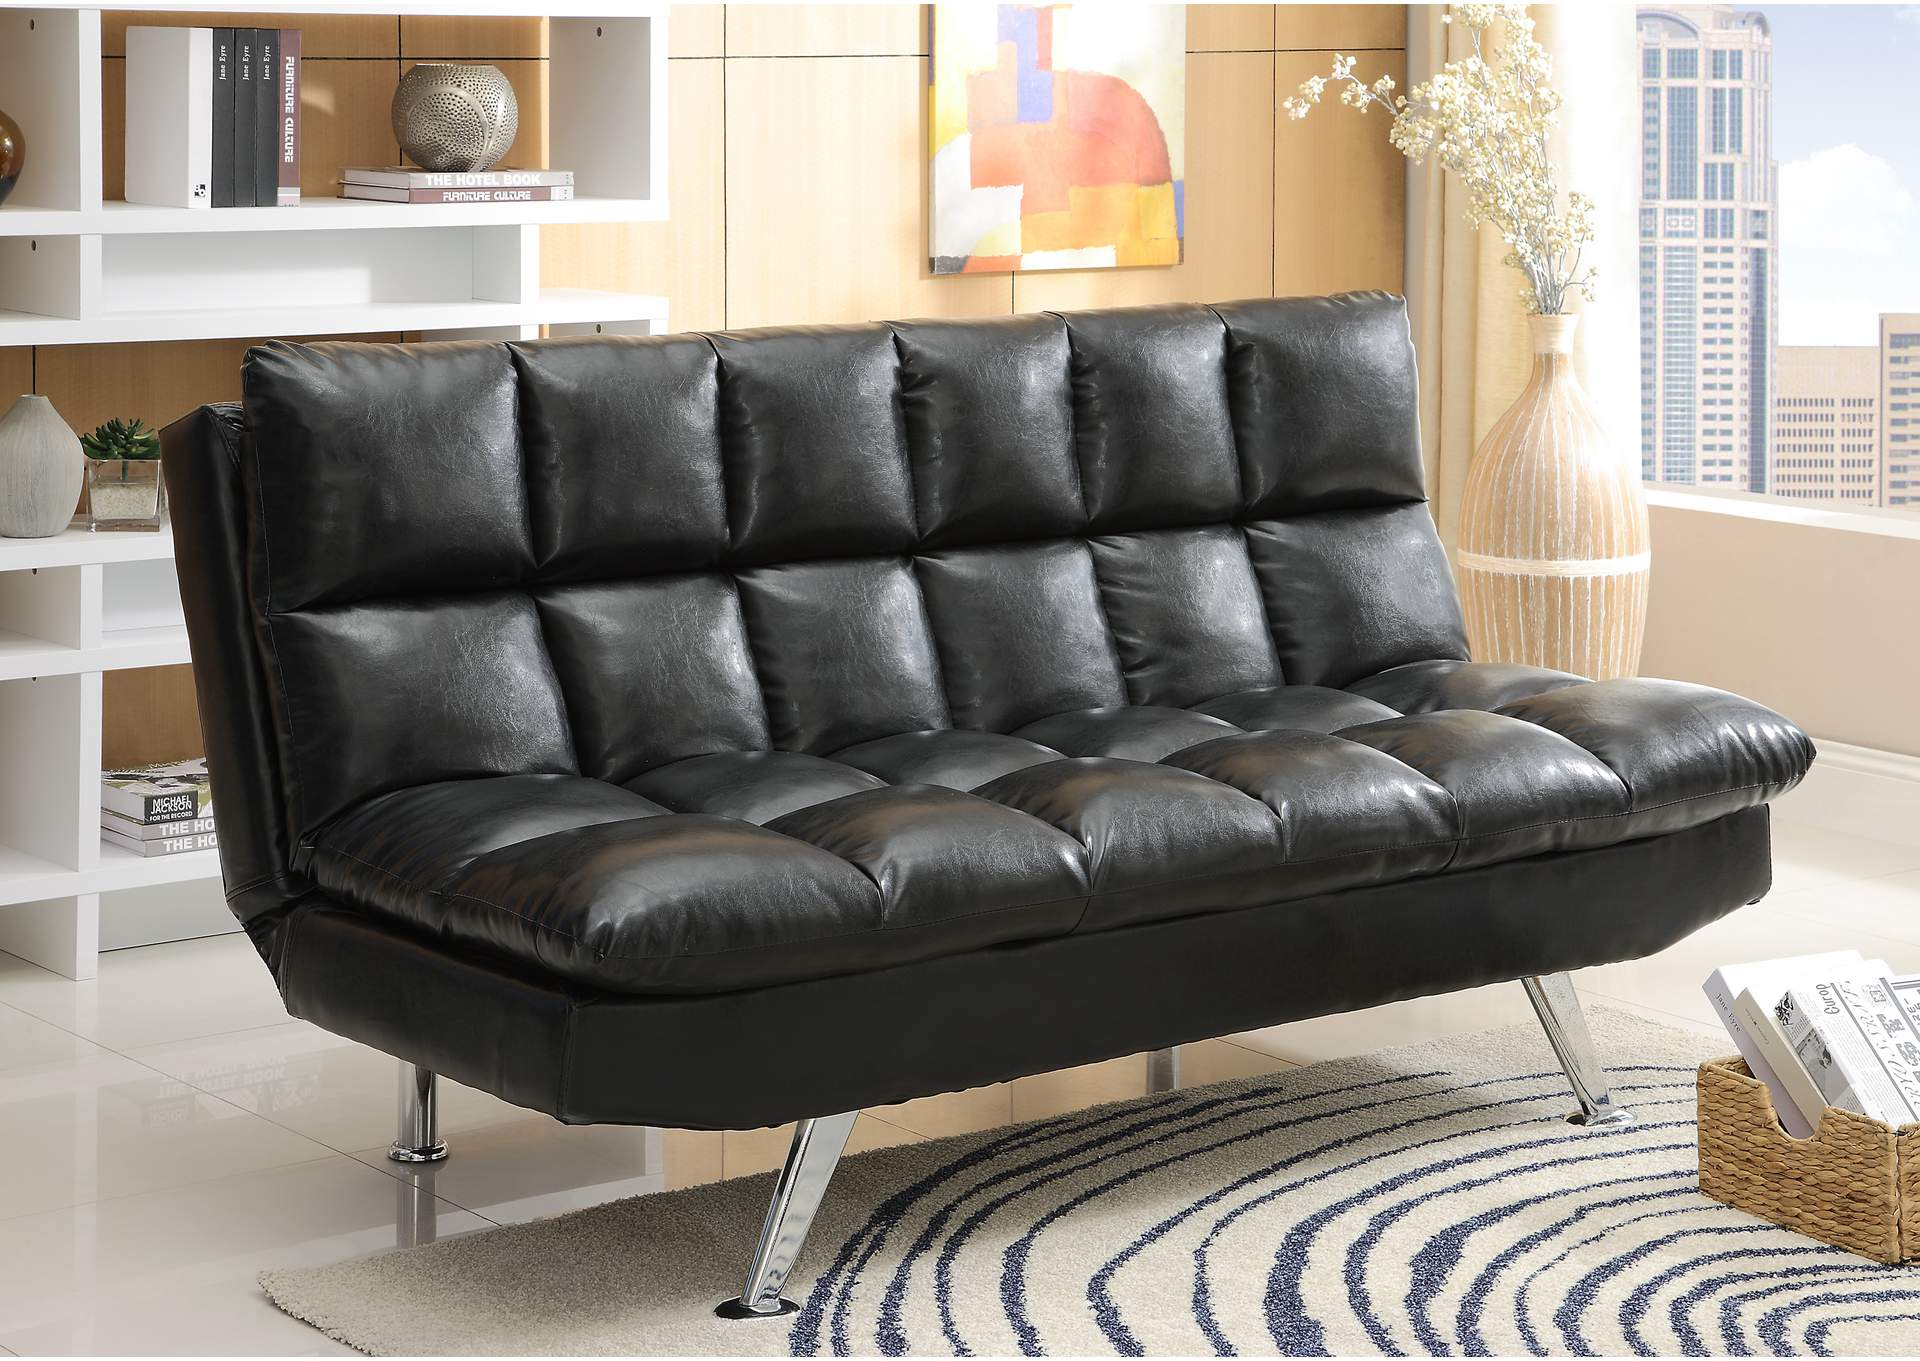 Sundown Black Adjustable Sofa,Crown Mark